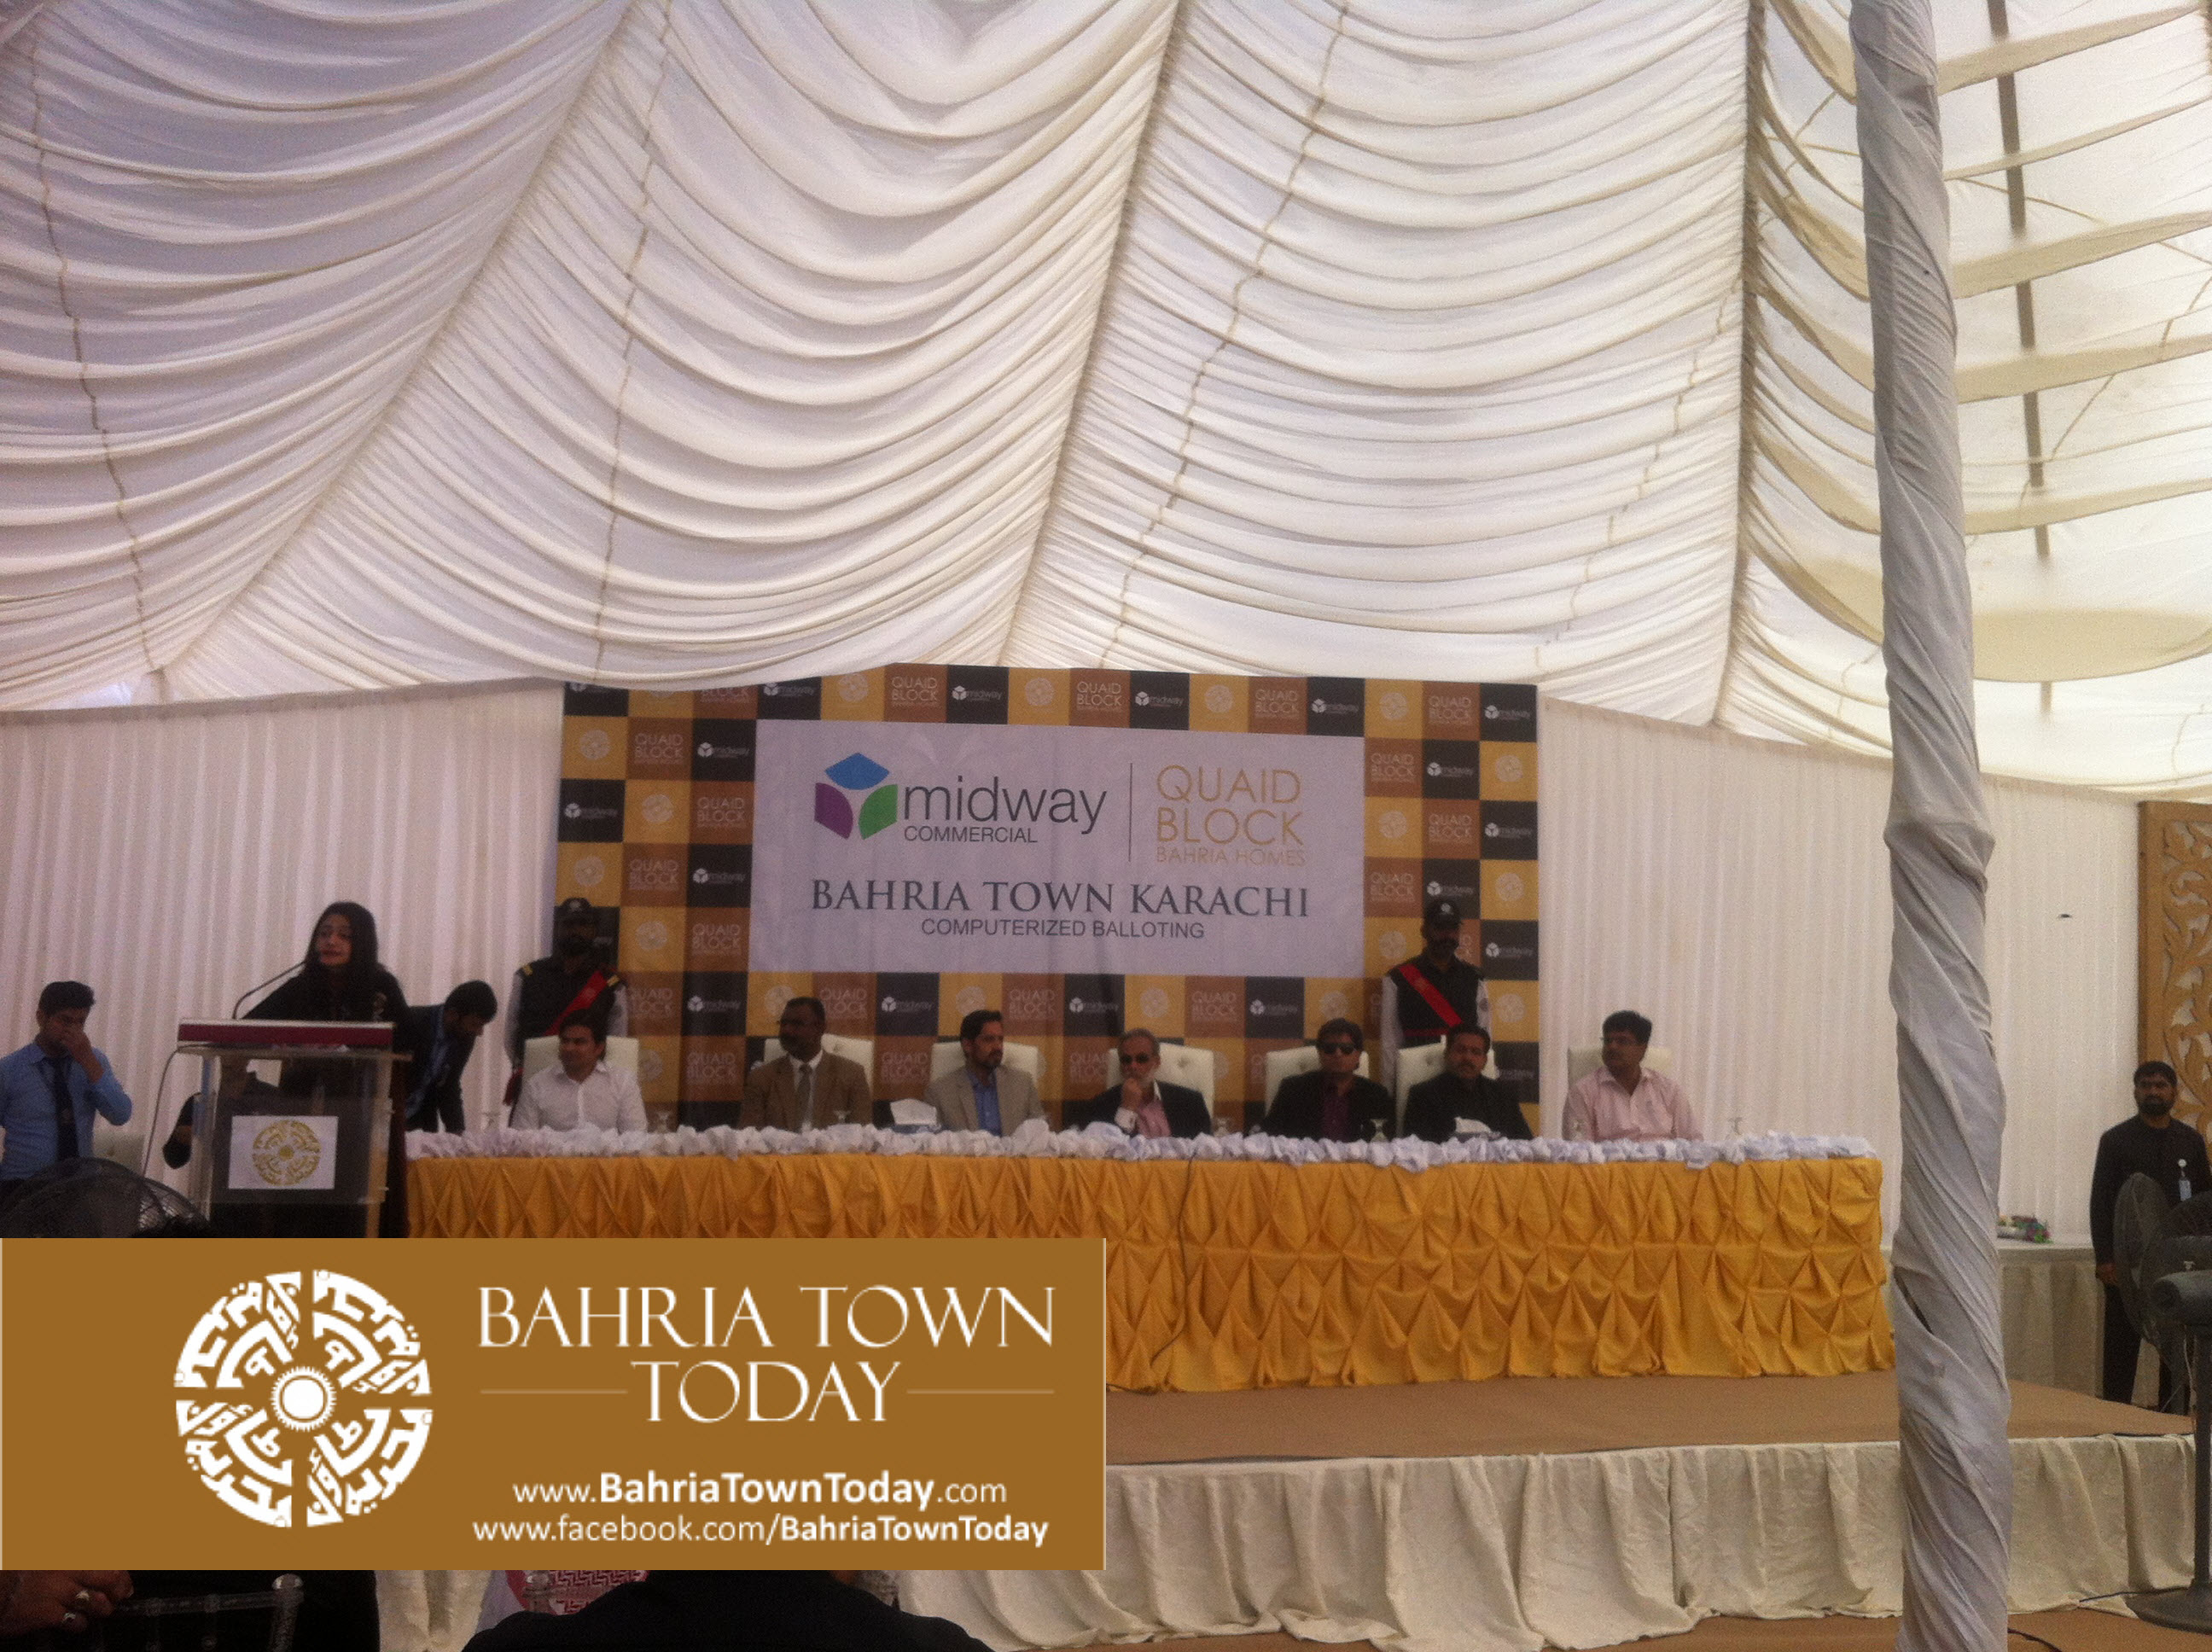 [Pictures] Computerized Balloting of Mid-Way Commercial and Quaid Villas 2015 (11)